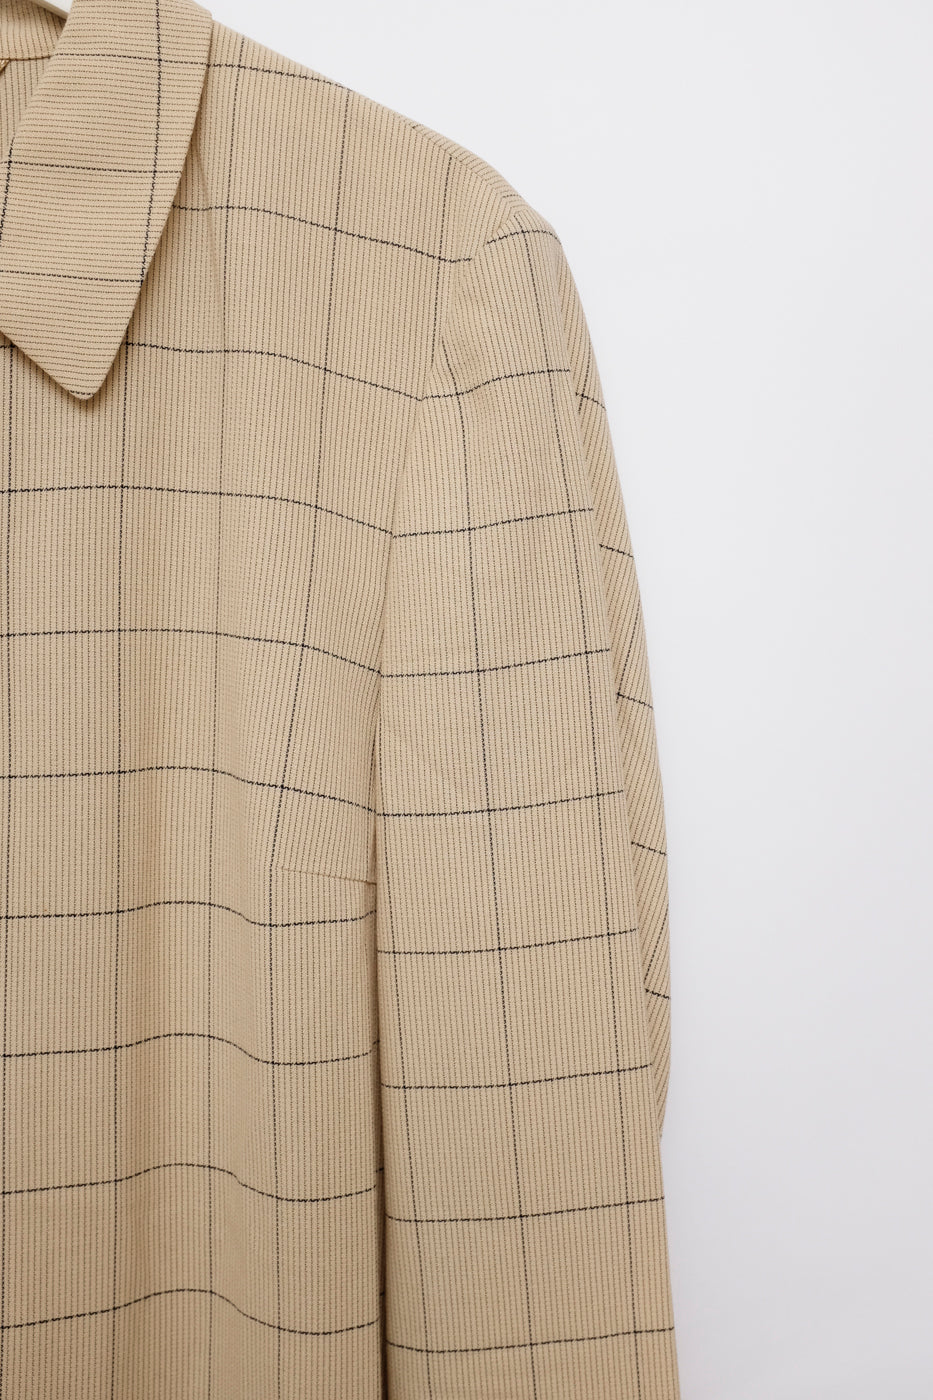 0012_GRID BELTED SHIRT JACKET